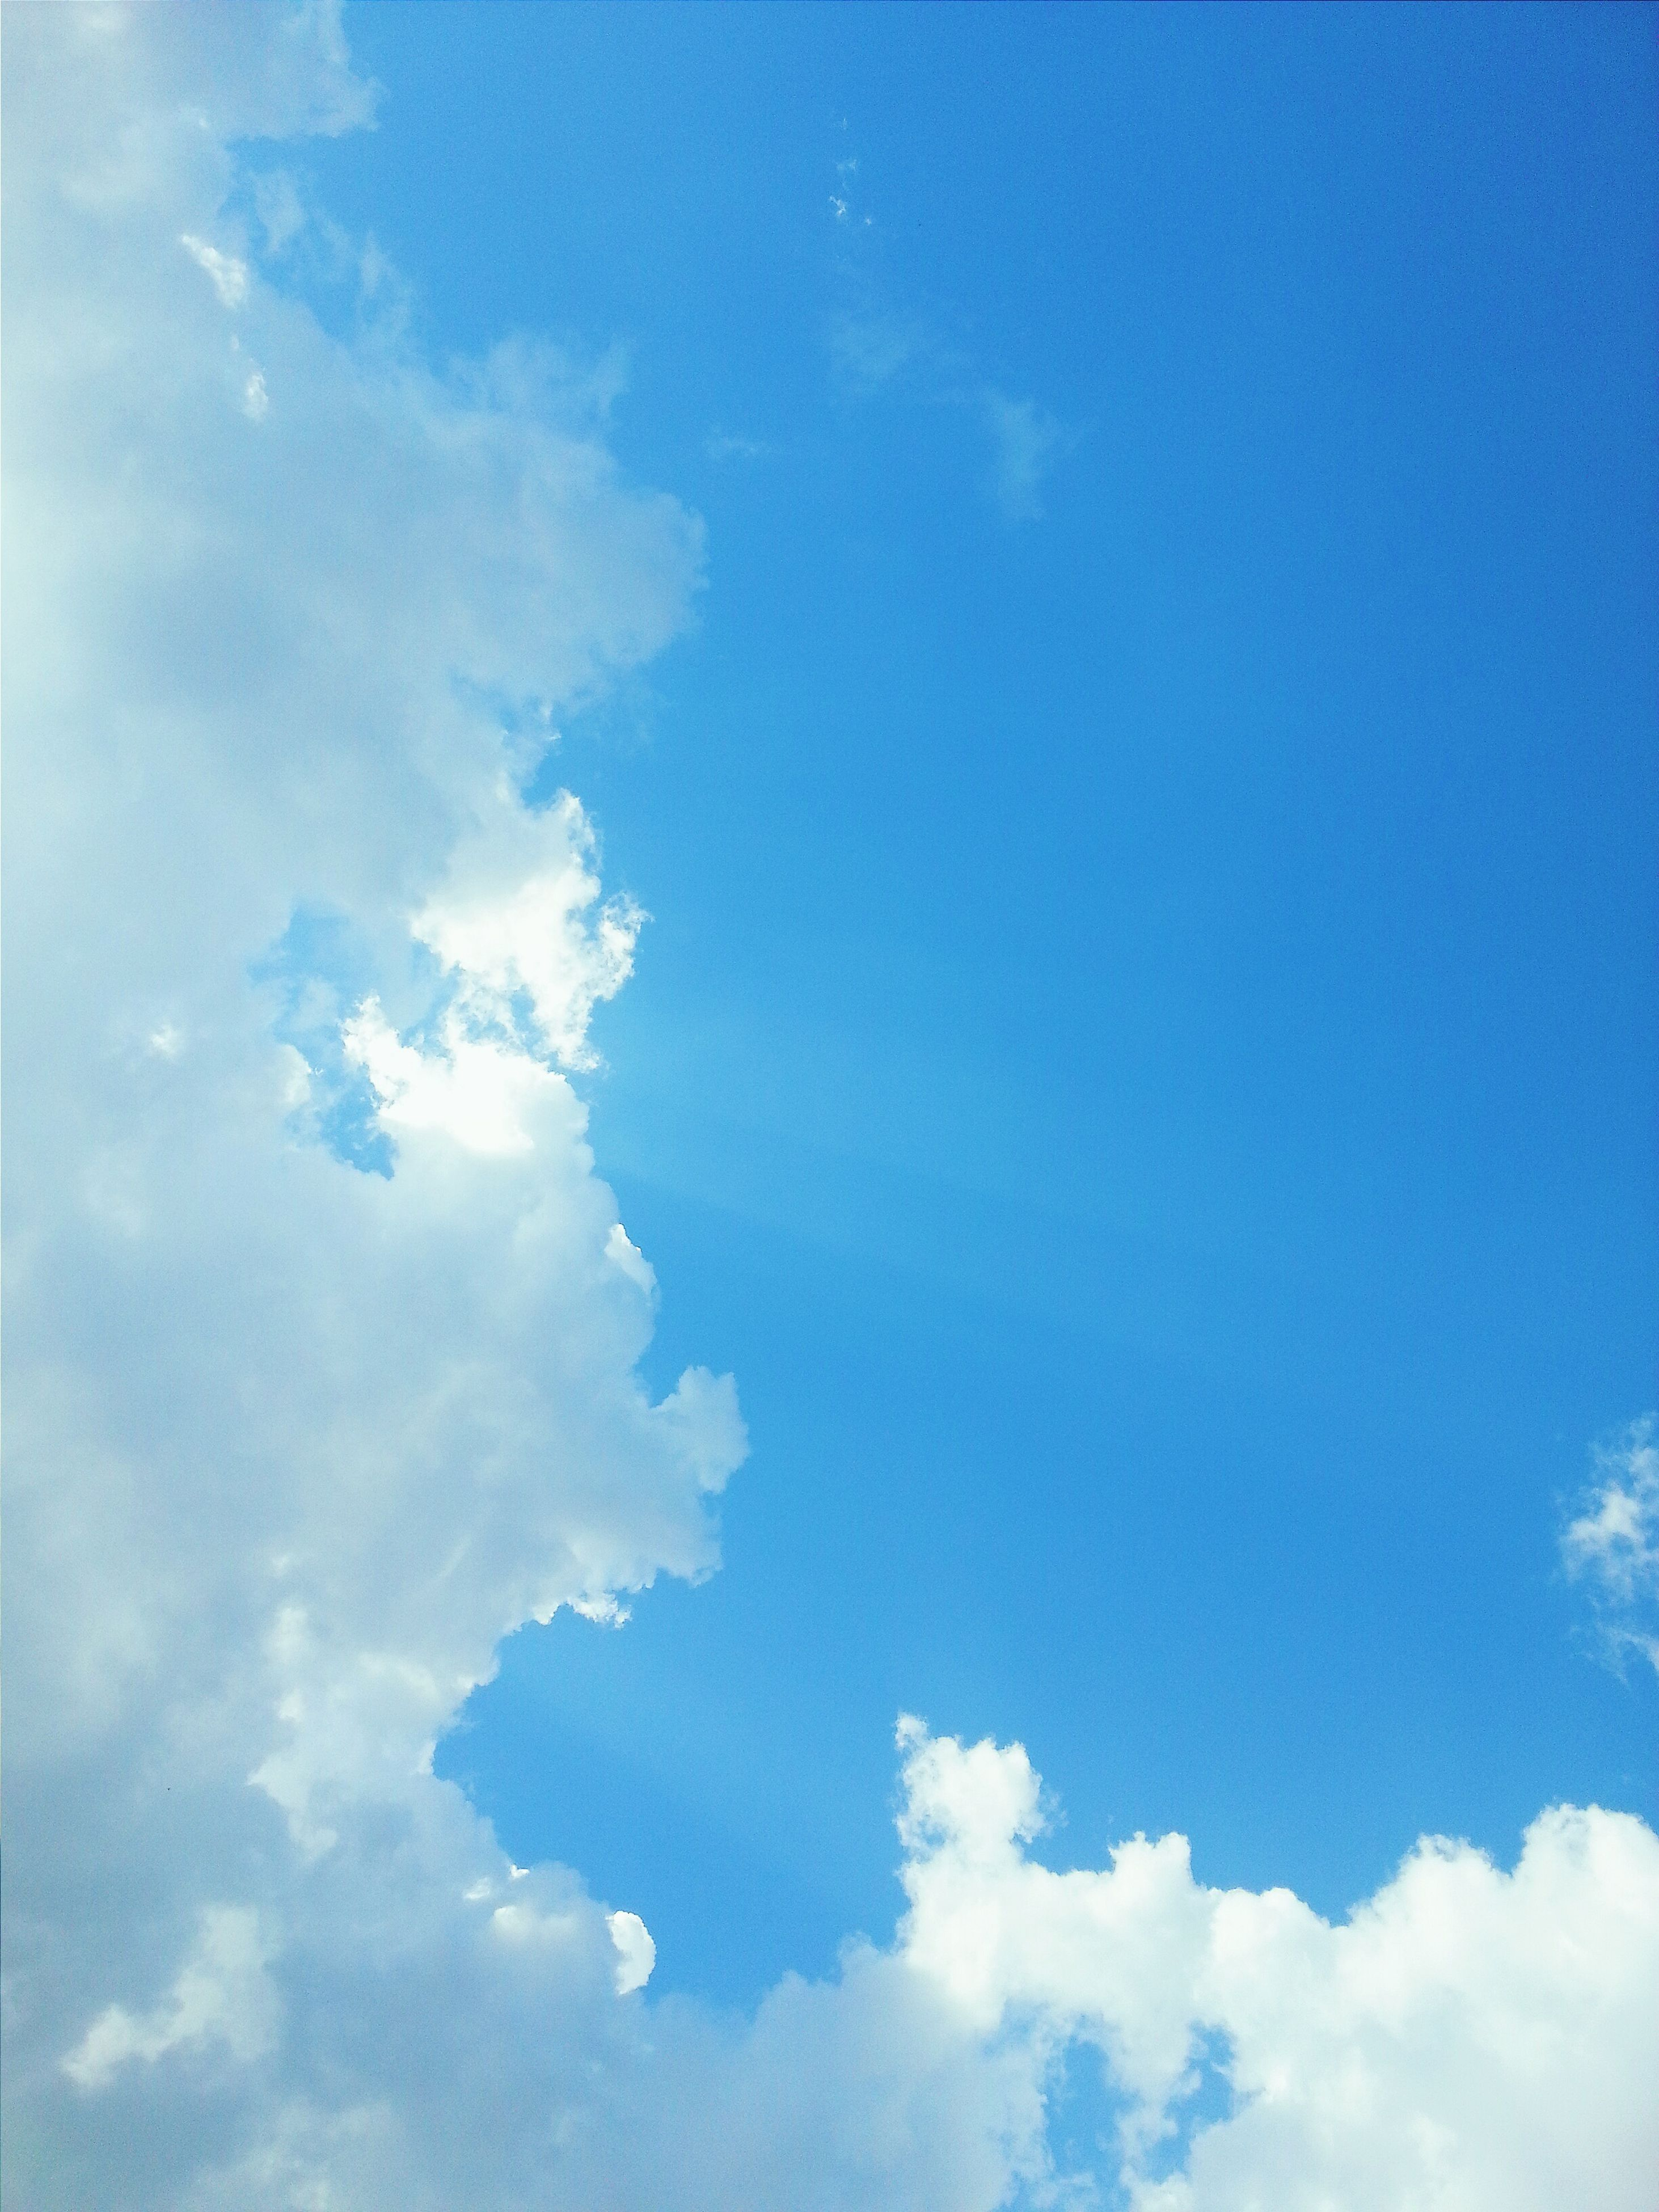 blue, low angle view, sky, beauty in nature, sky only, cloud - sky, tranquility, scenics, nature, tranquil scene, cloud, backgrounds, idyllic, white color, cloudscape, outdoors, day, no people, full frame, cloudy